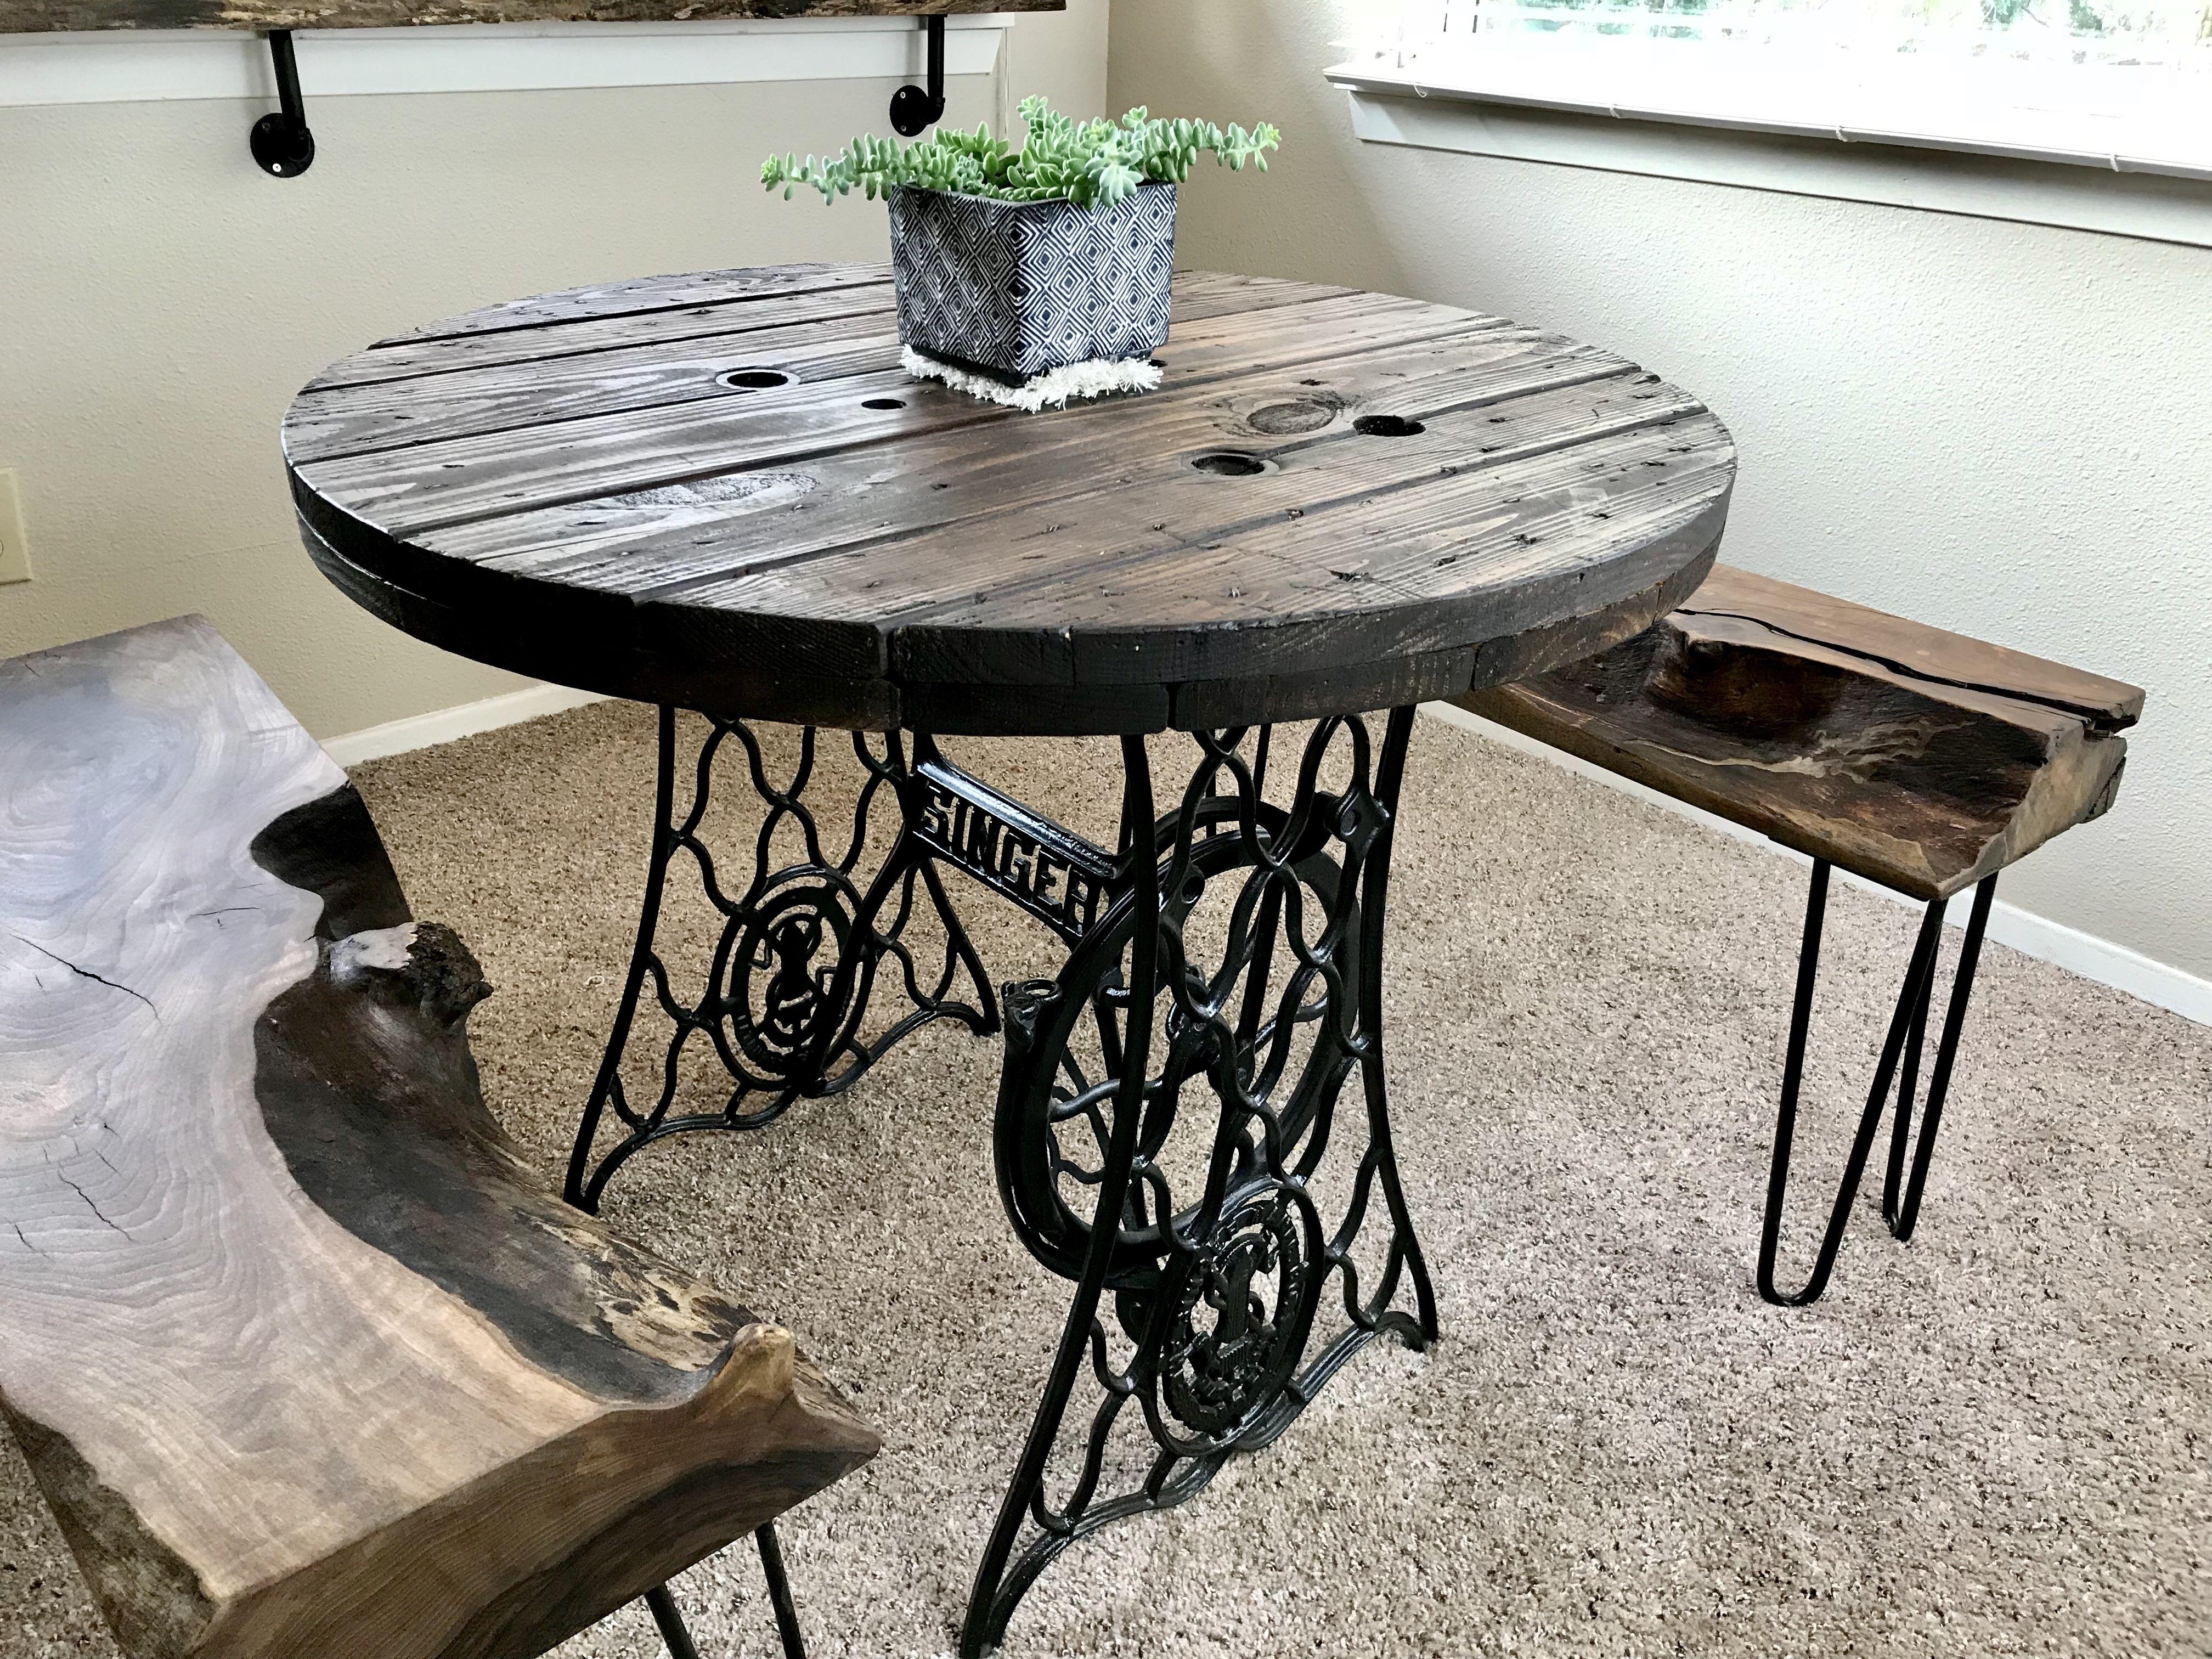 Terrific Vintage Kitchen Table Made From A Singer Treadle Sewing Lamtechconsult Wood Chair Design Ideas Lamtechconsultcom